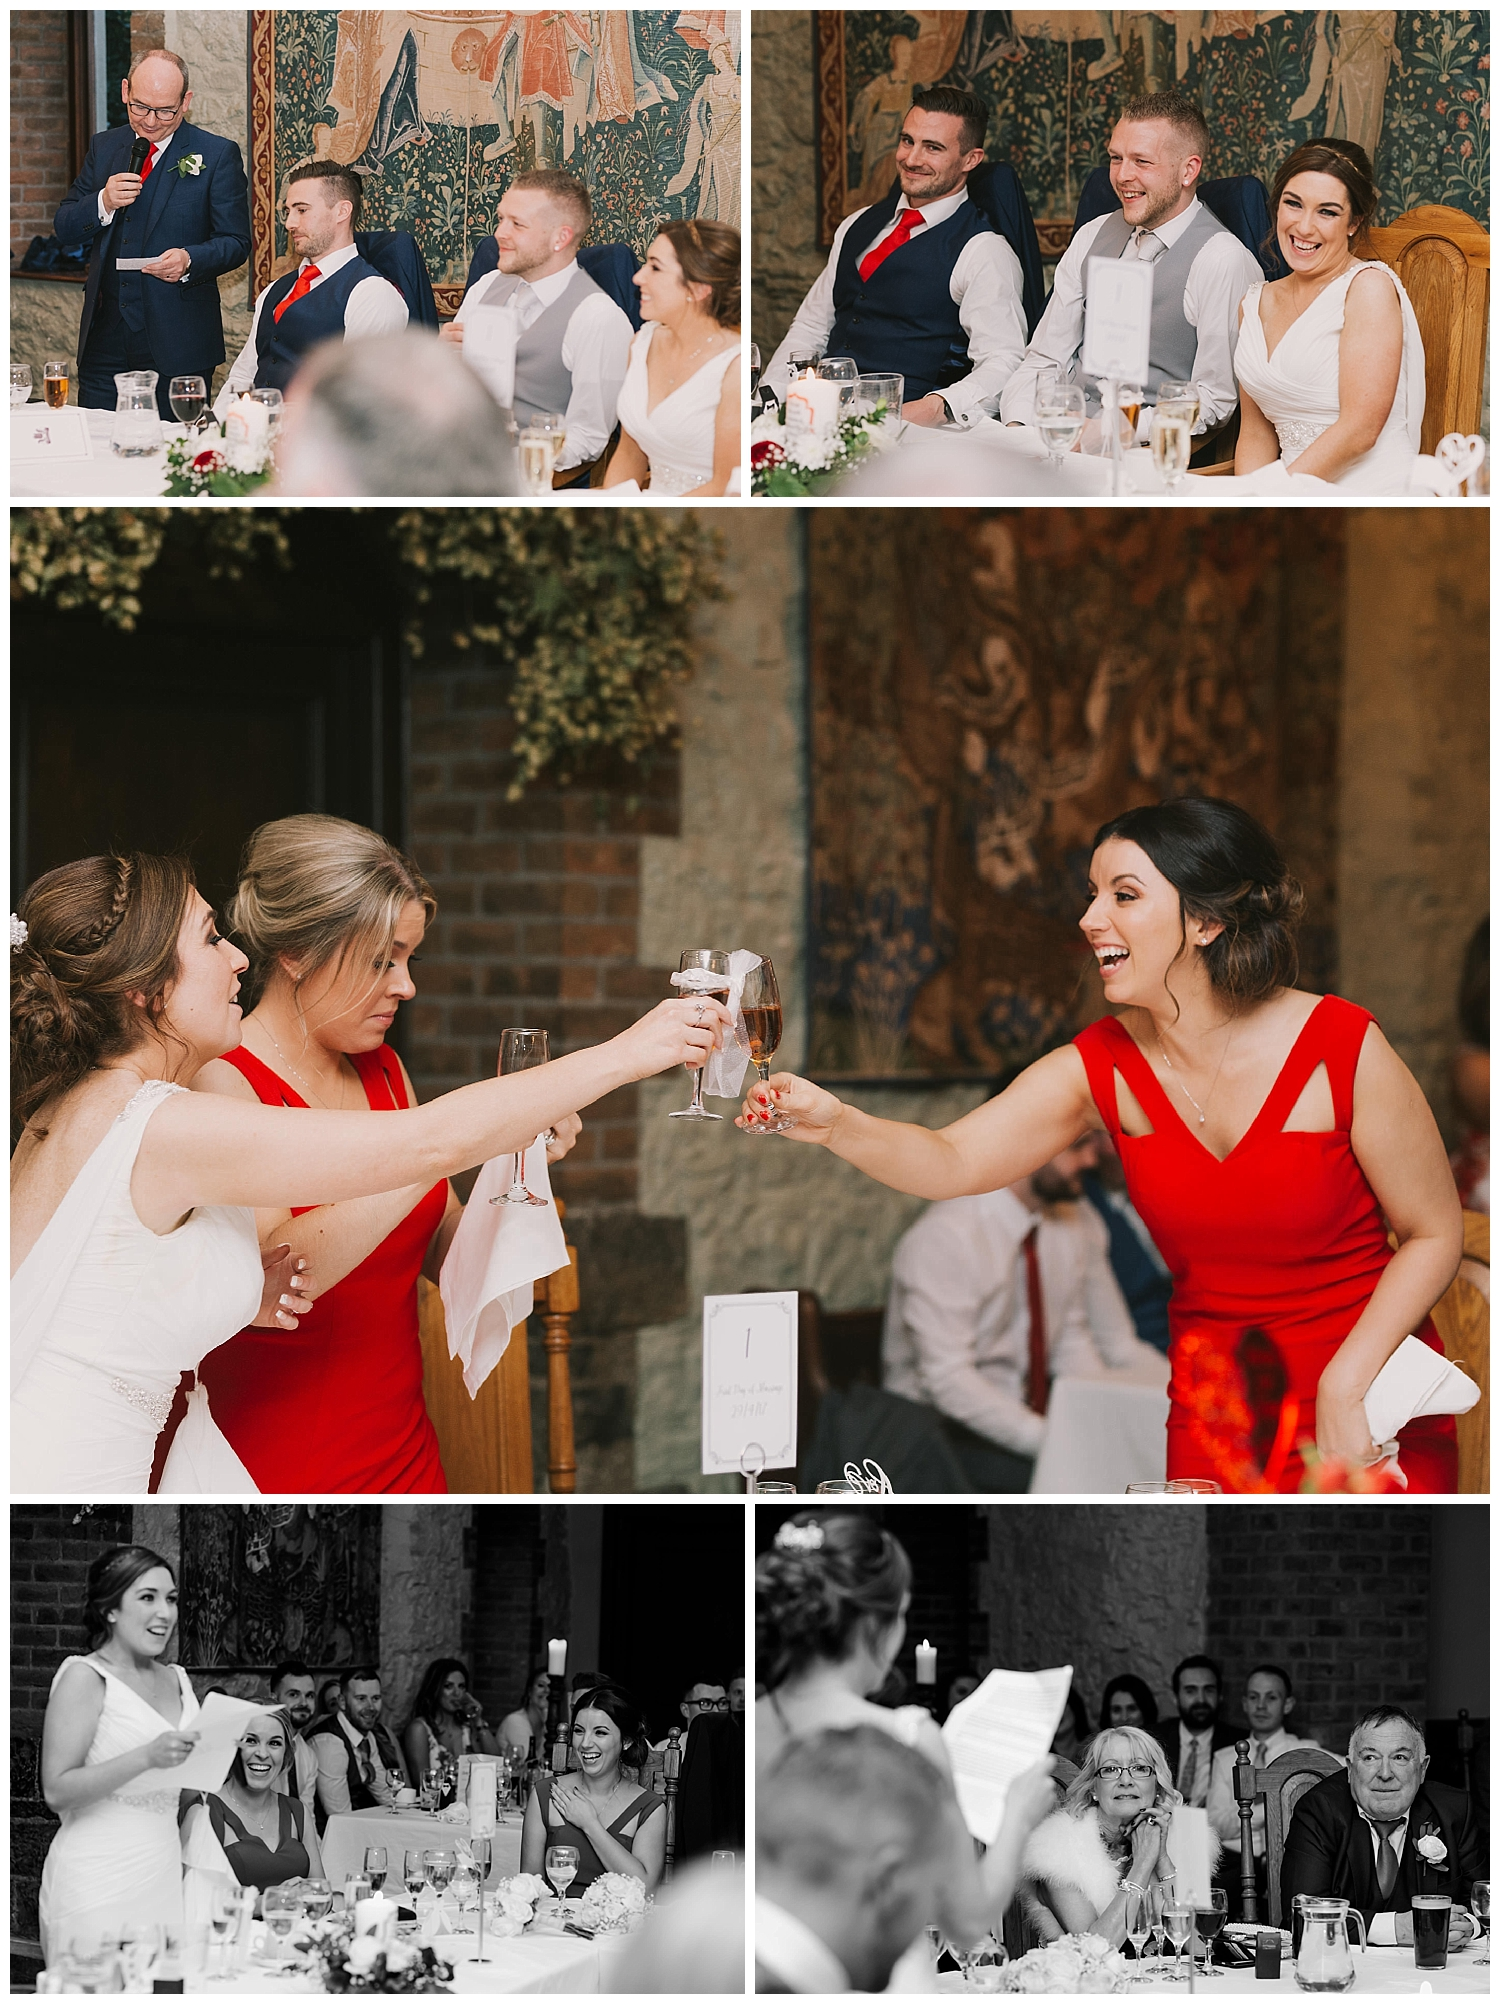 Barberstown_Castle_Wedding_Photographer_Livia_Figueiredo_676.jpg